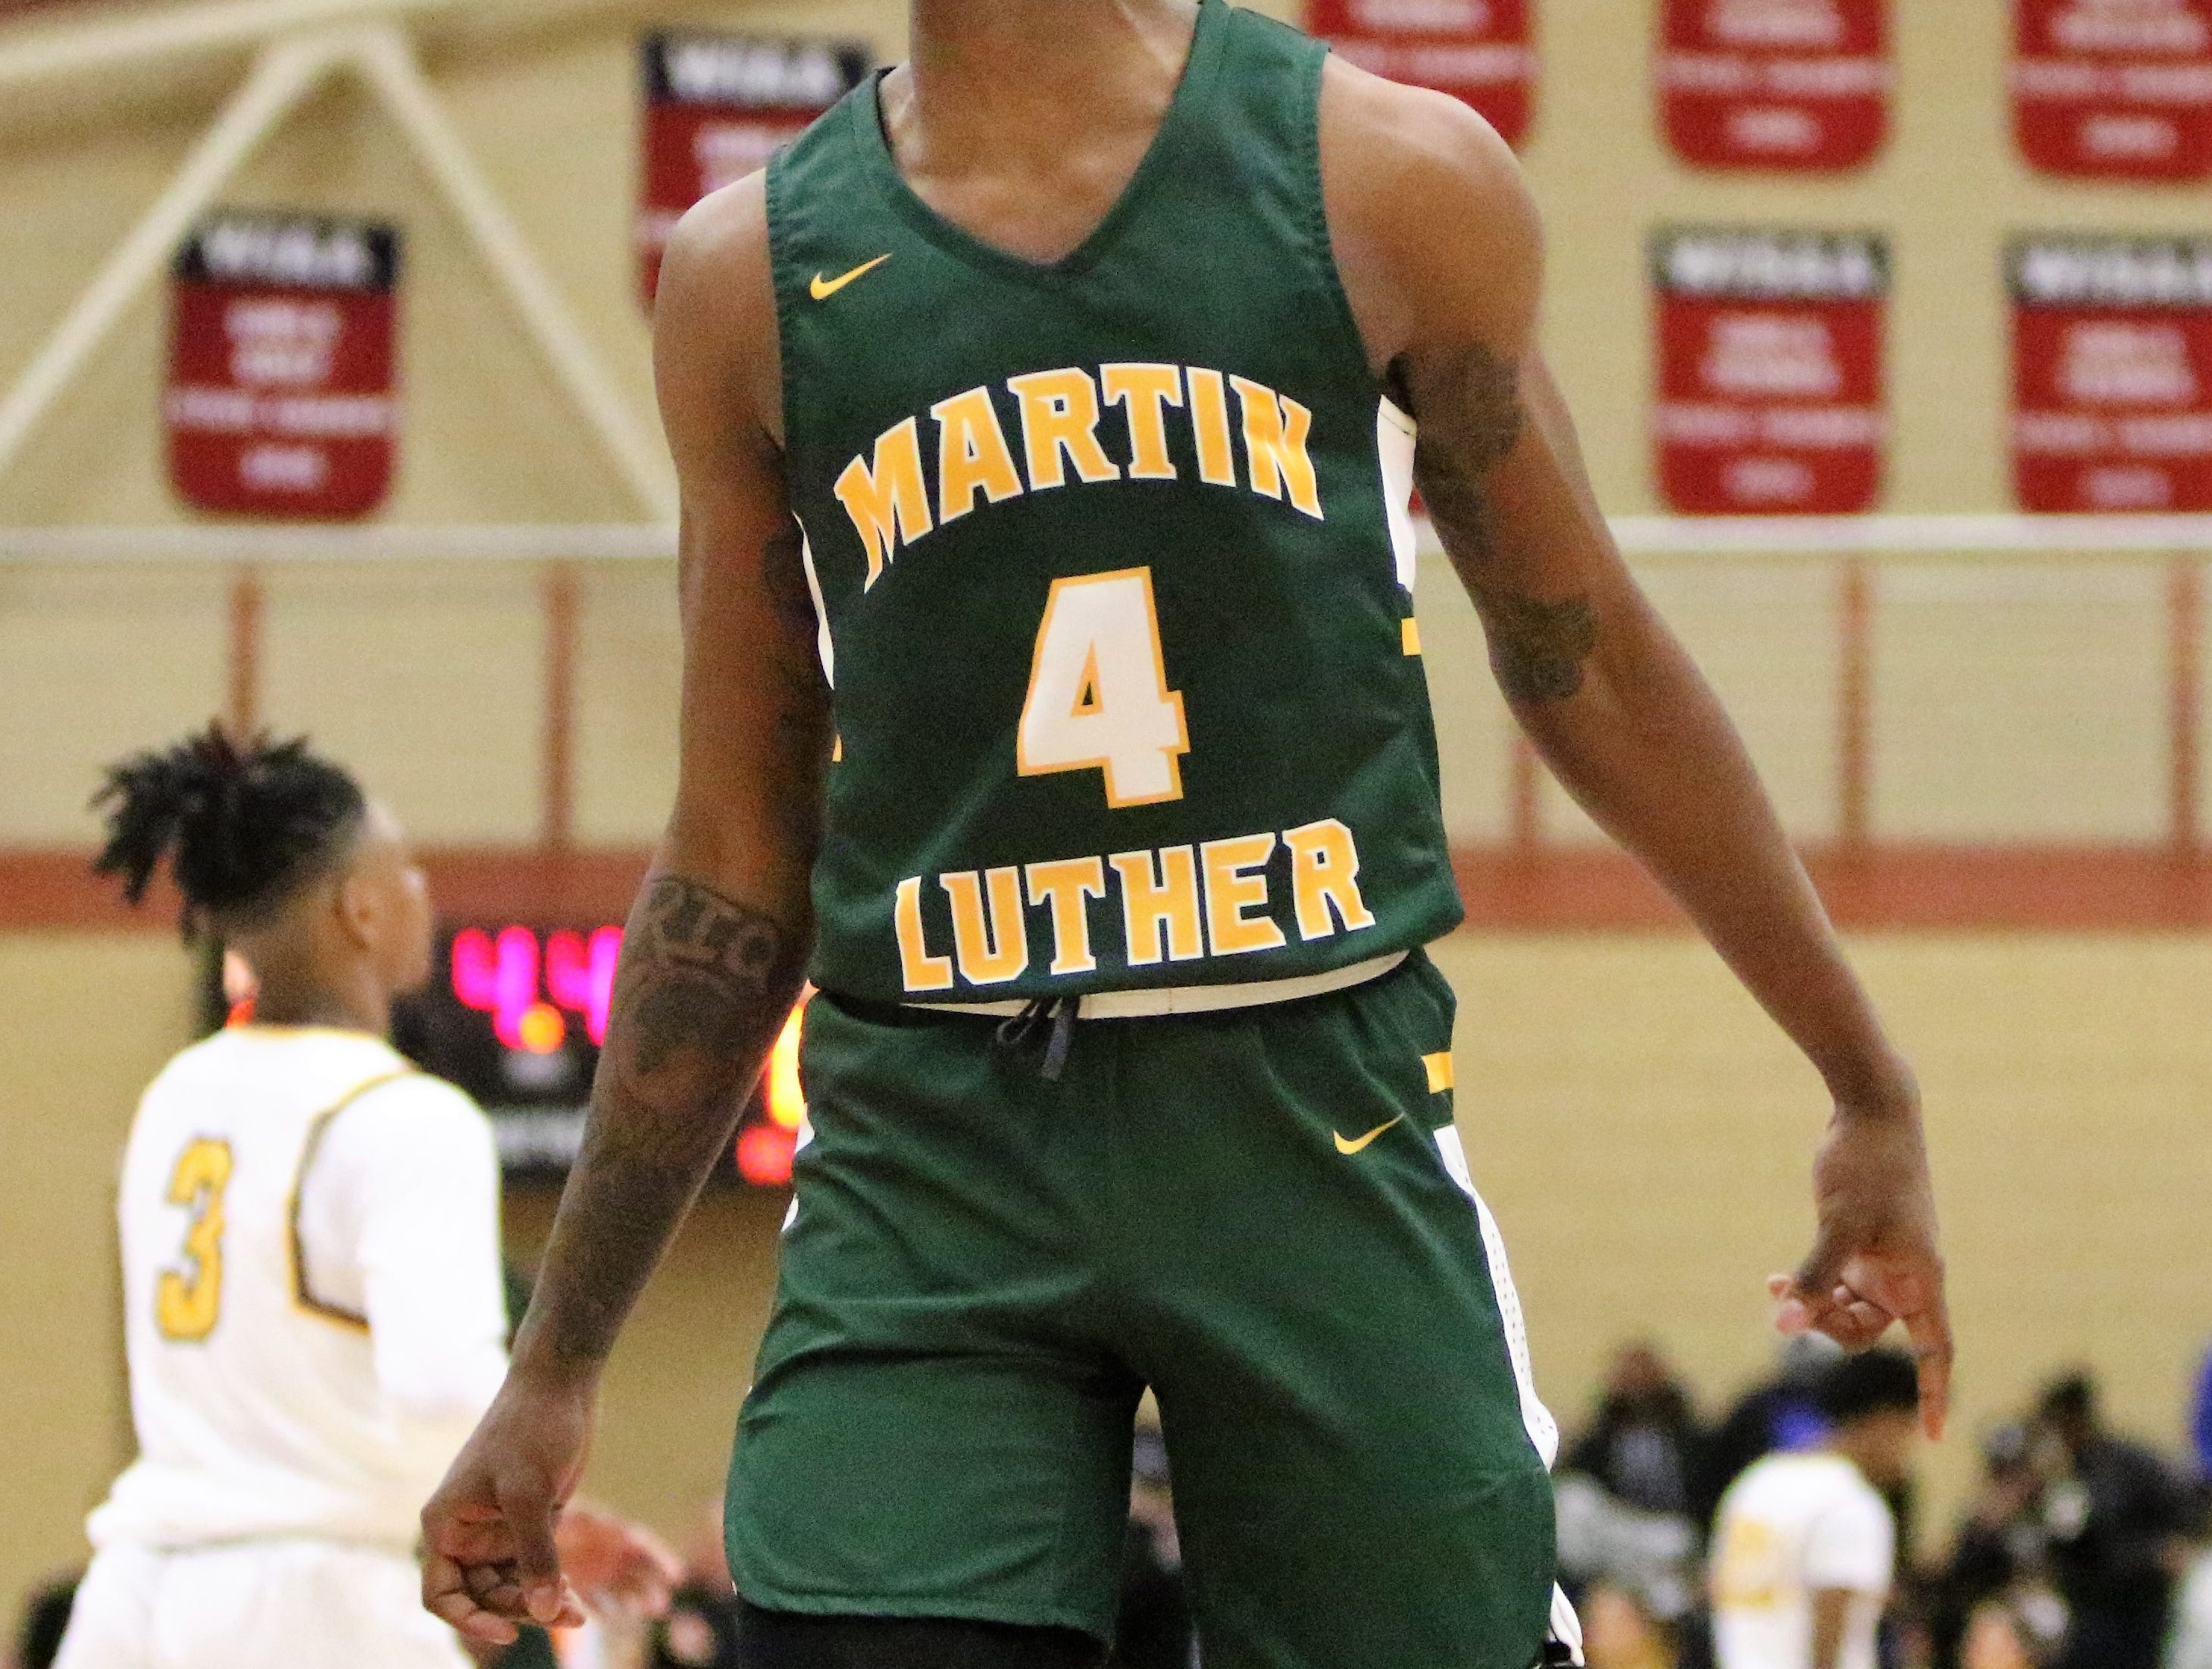 Martin Luther forward Xzavier Jones celebrates his team's win over Racine St. Catherine's in a WIAA sectional semifinal on March 7, 2019.